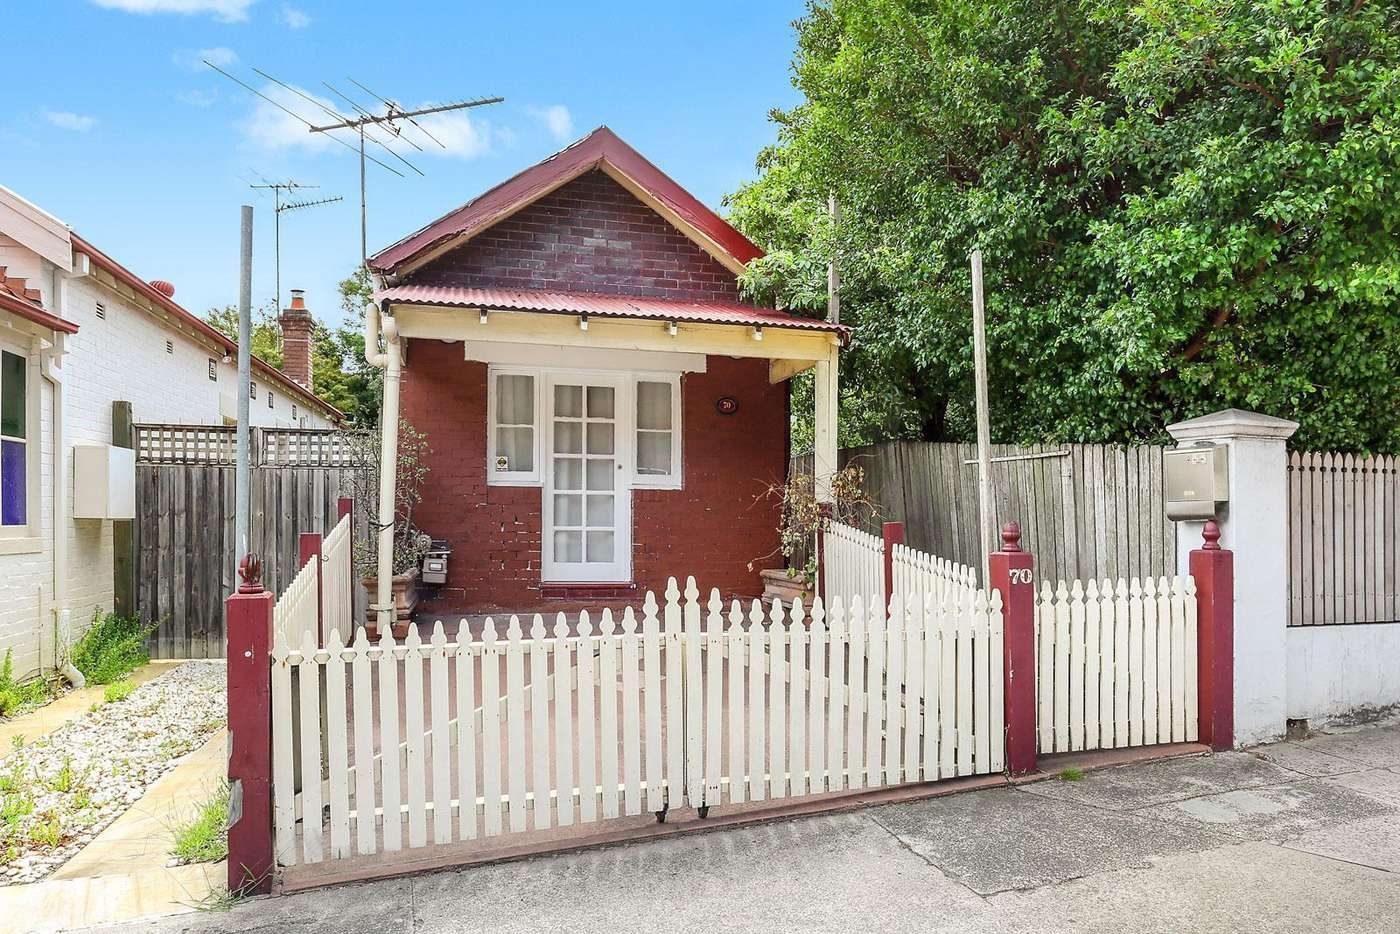 Main view of Homely house listing, 70 Balmain Road, Leichhardt NSW 2040